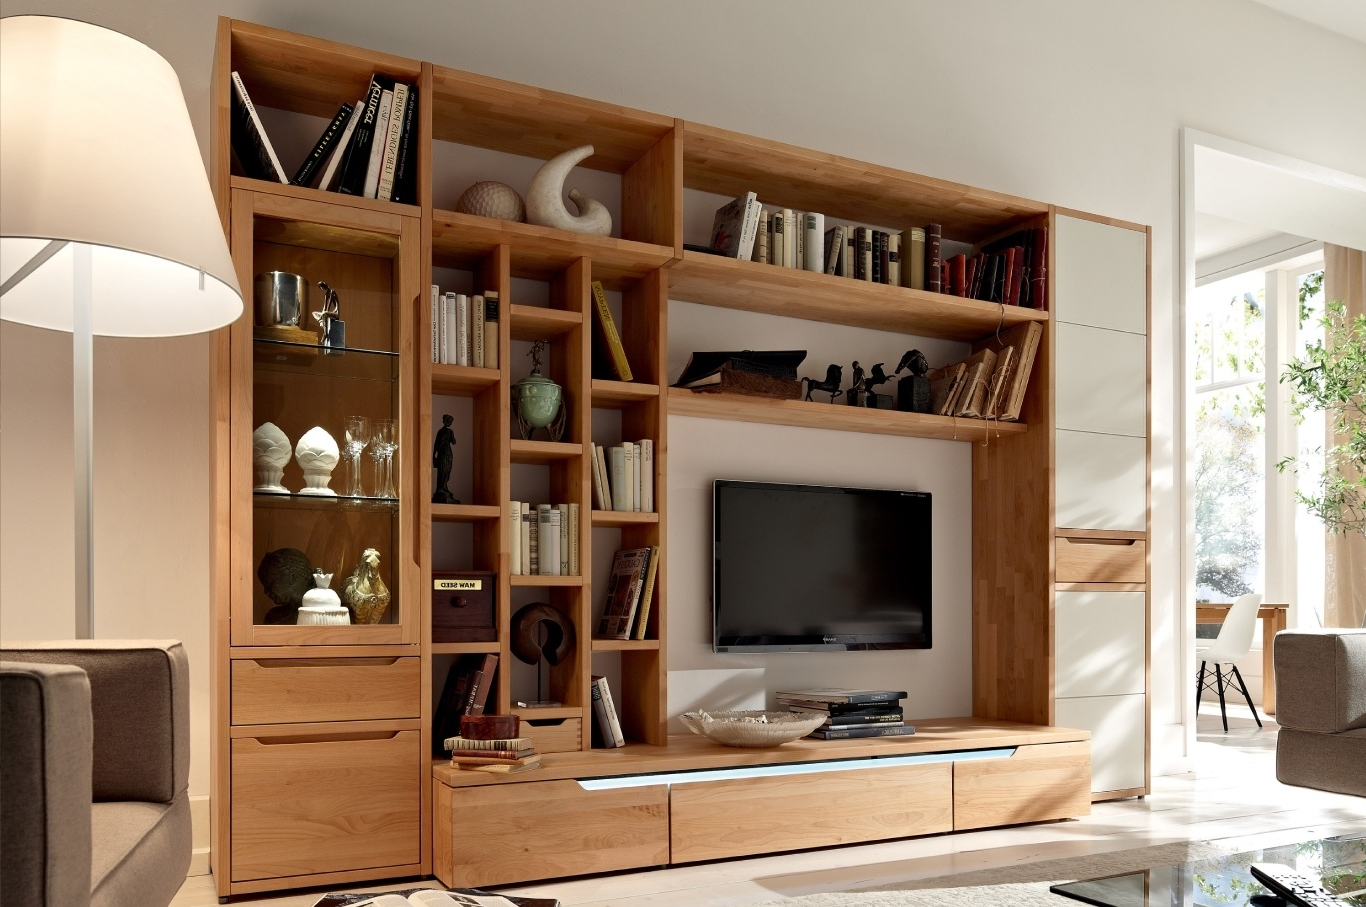 Favorite Custom Built Wall Units Plans Tv Bookcase Combination Full Hd With Regard To Tv Bookcases Combination (View 4 of 15)